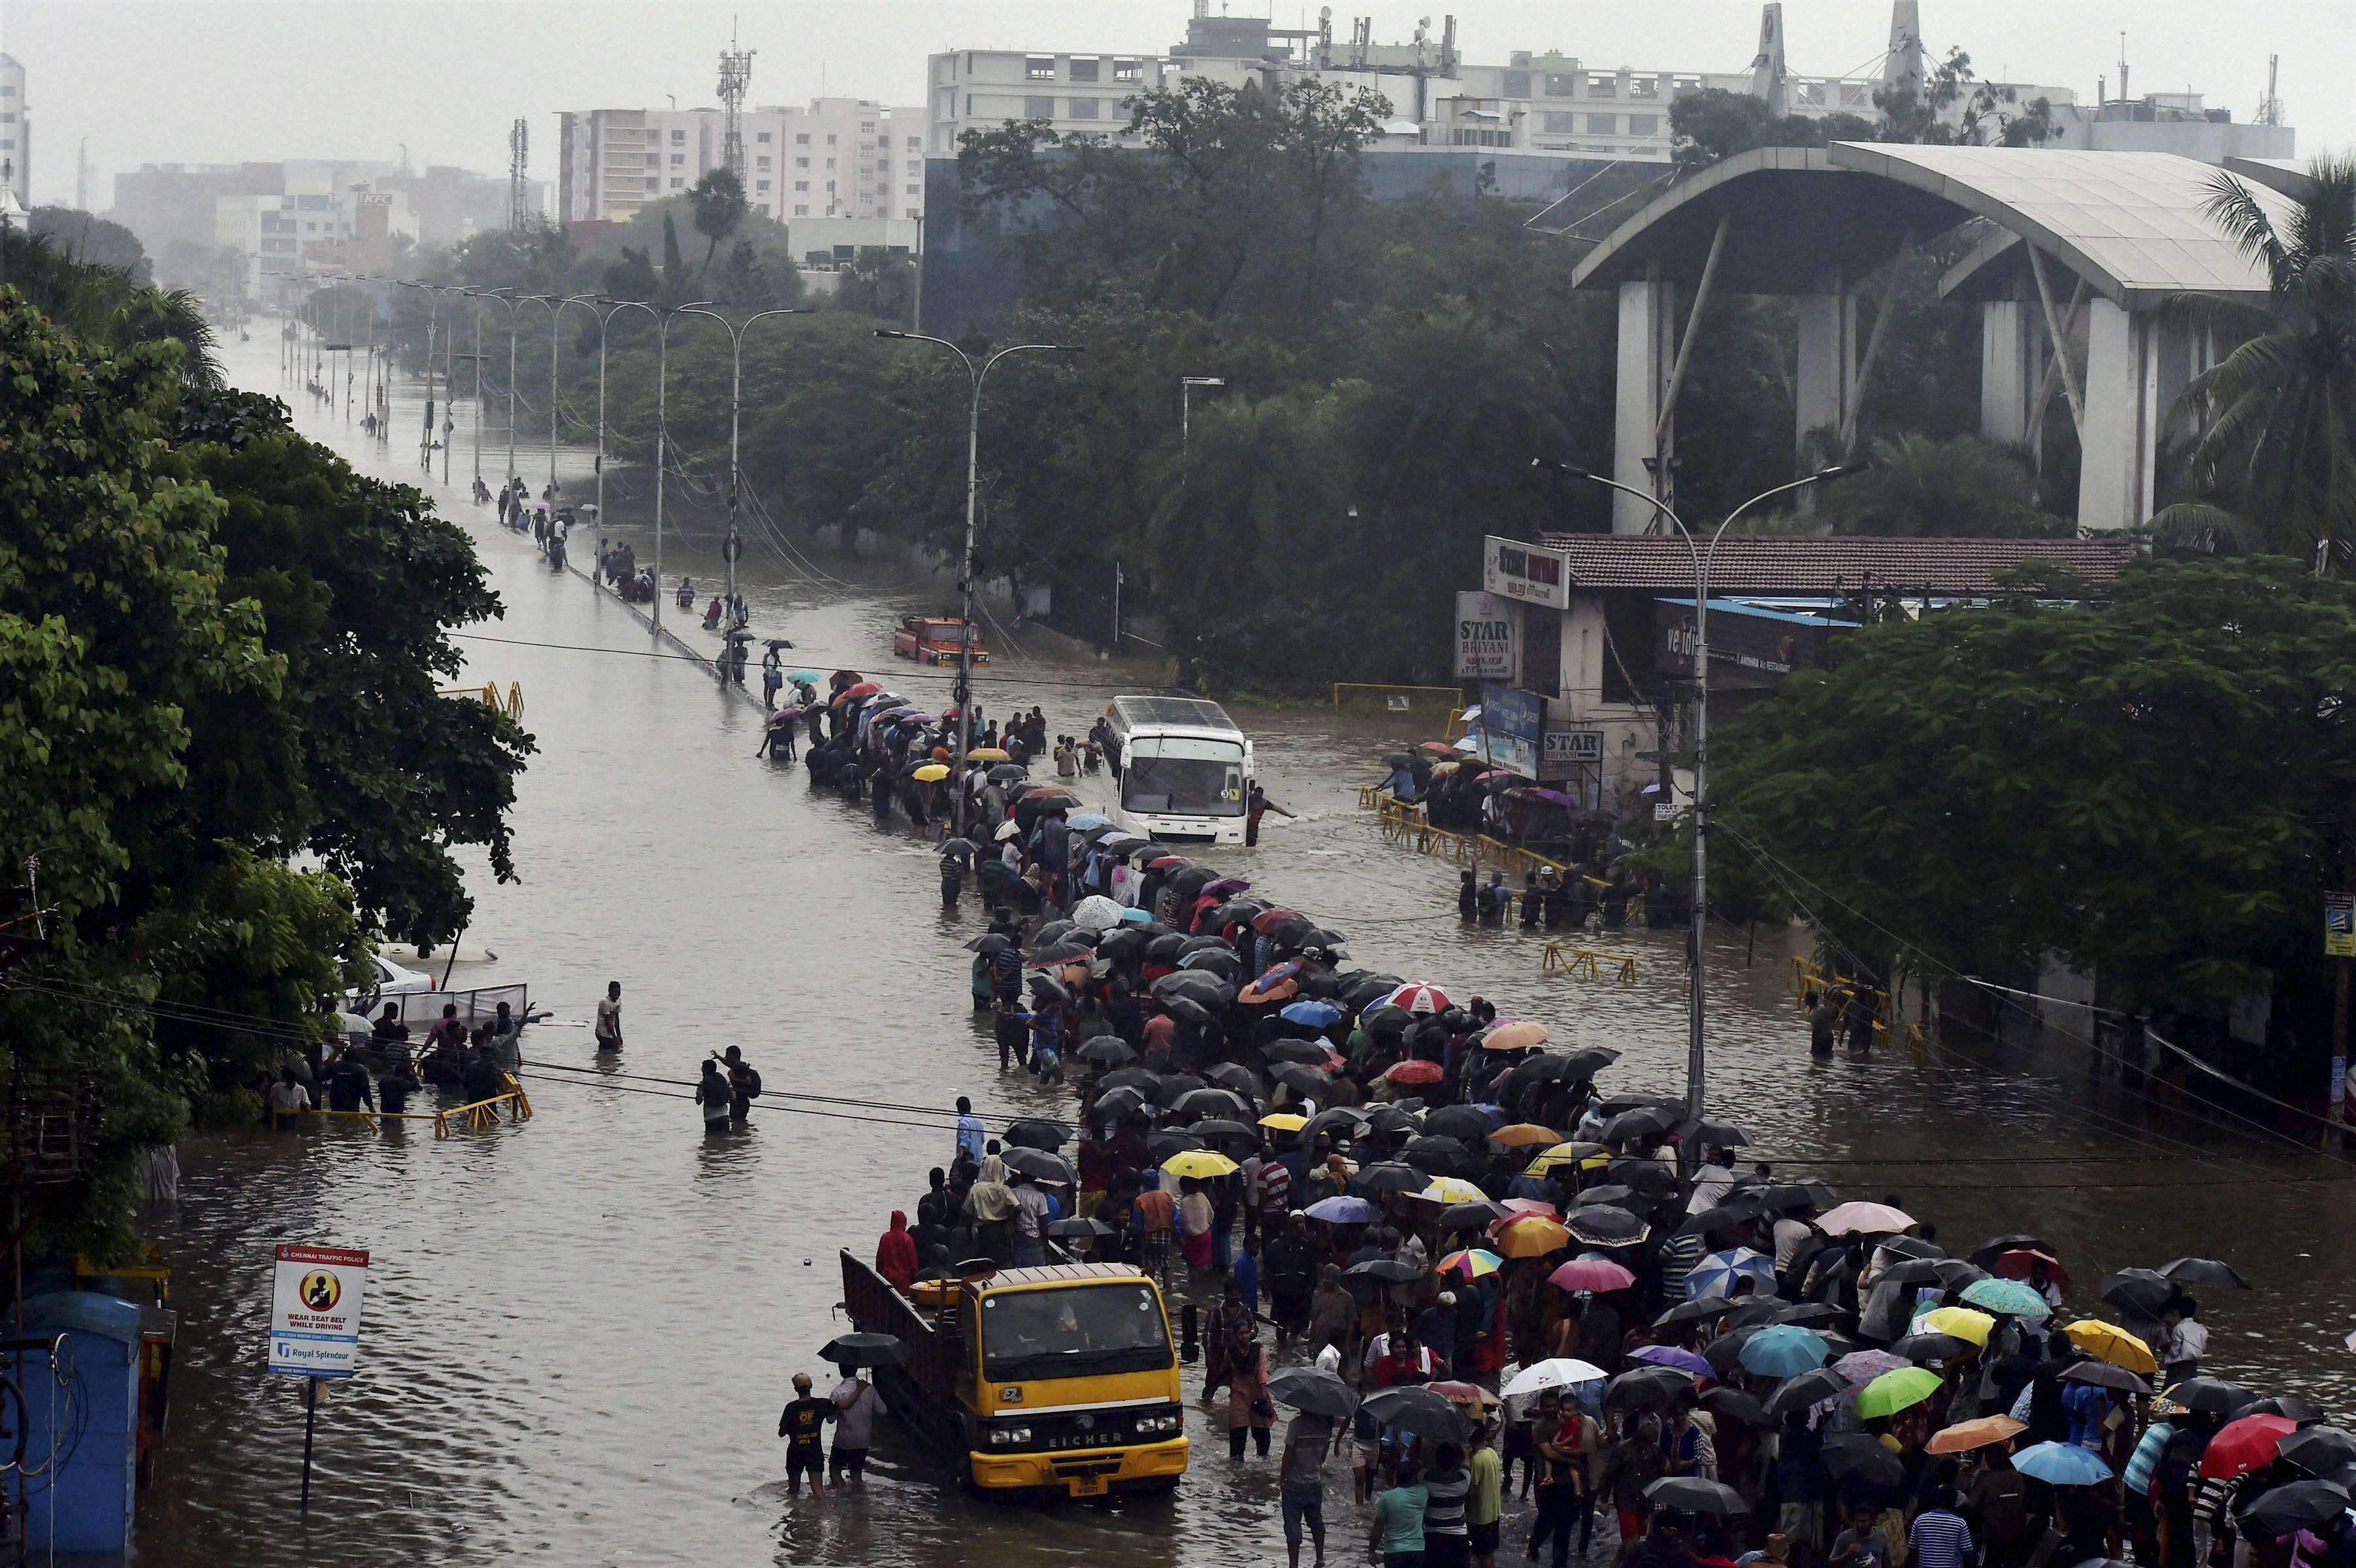 And then came the deluge: when roads turned into rivers following heavy rains in Chennai